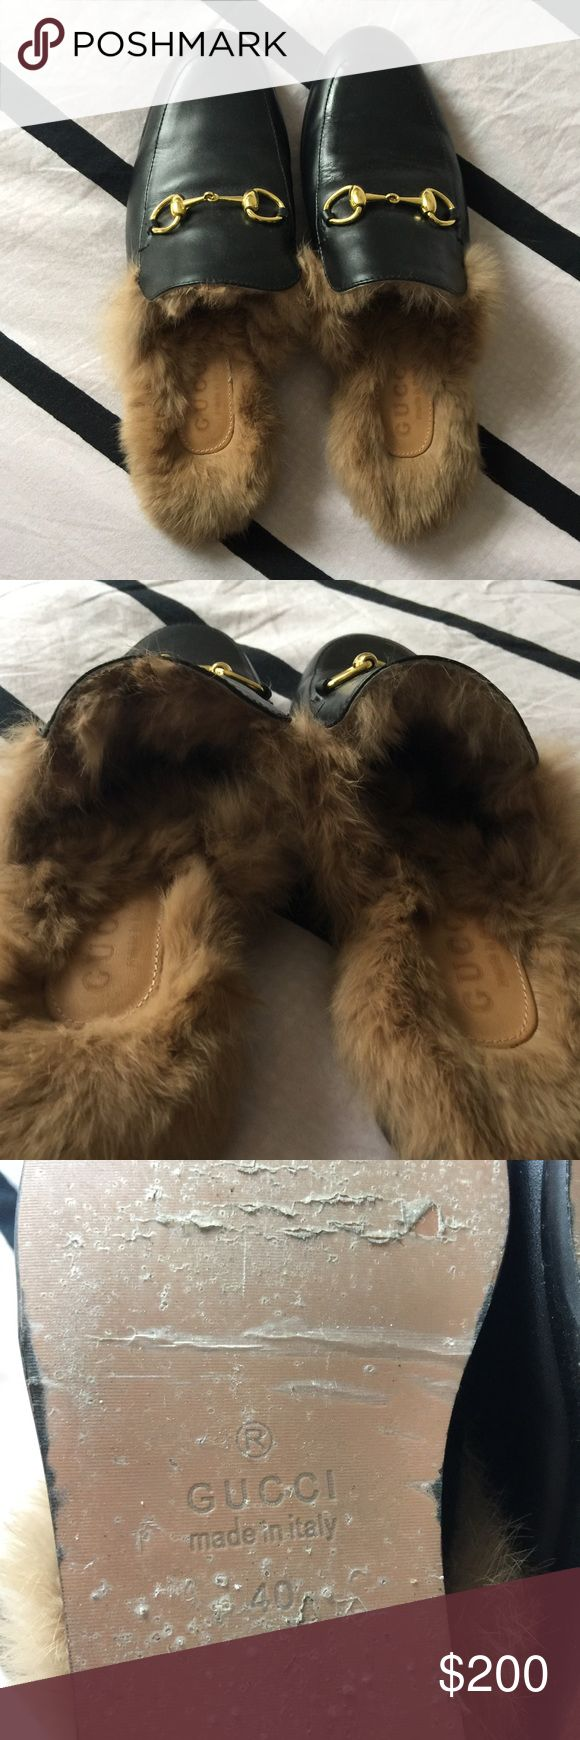 Gucci fur lined horse bit loafers Real fur real leather !! Lovely lovely shoes and such a fantastic price!! Fit more like a 38.5-39. Very sad wish they fit . Worn once for a few hours Gucci Shoes Flats & Loafers